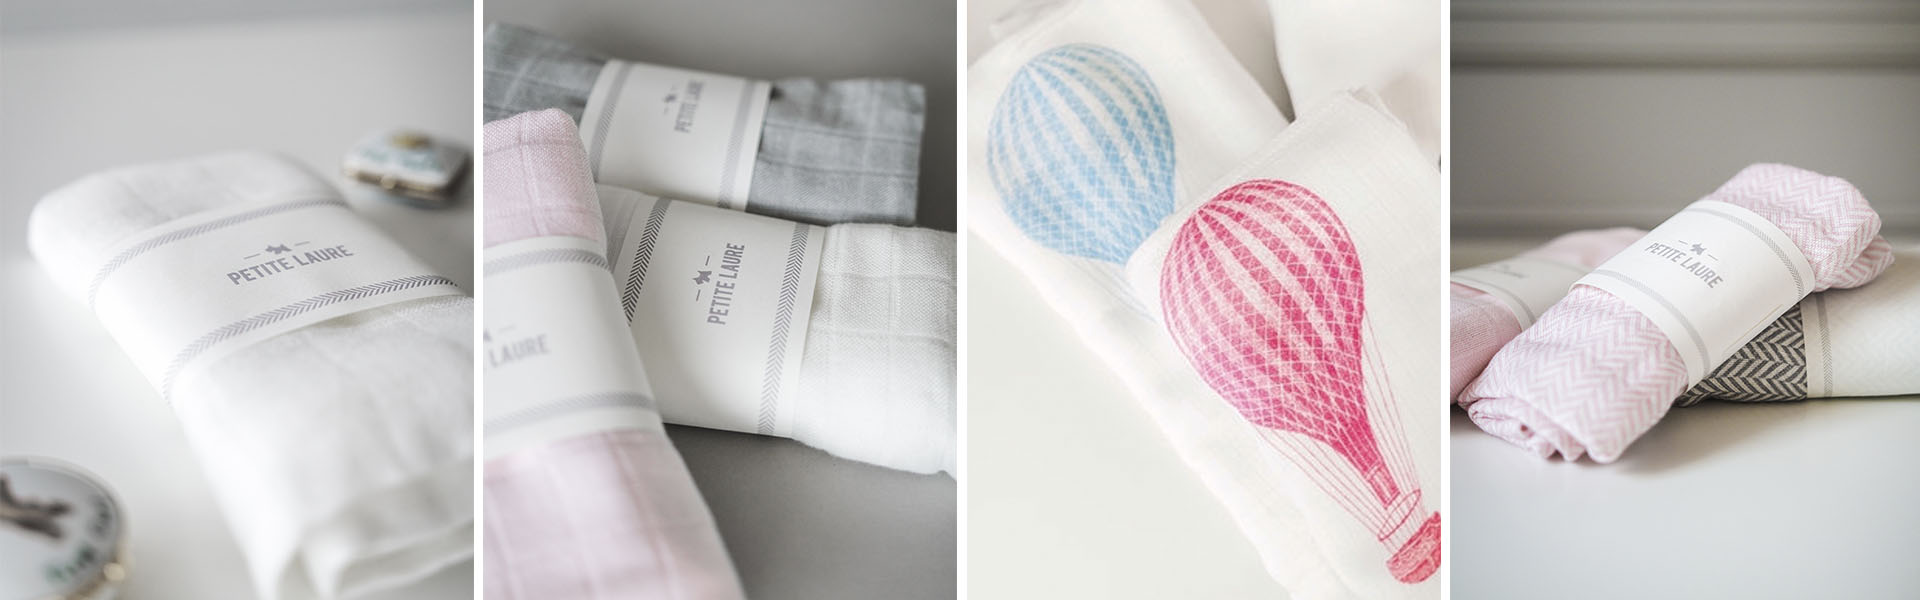 Baby blankets & newborn baby swaddles by PETITE LAURE. Soft Organic Cotton & Bamboo Baby Blankets.